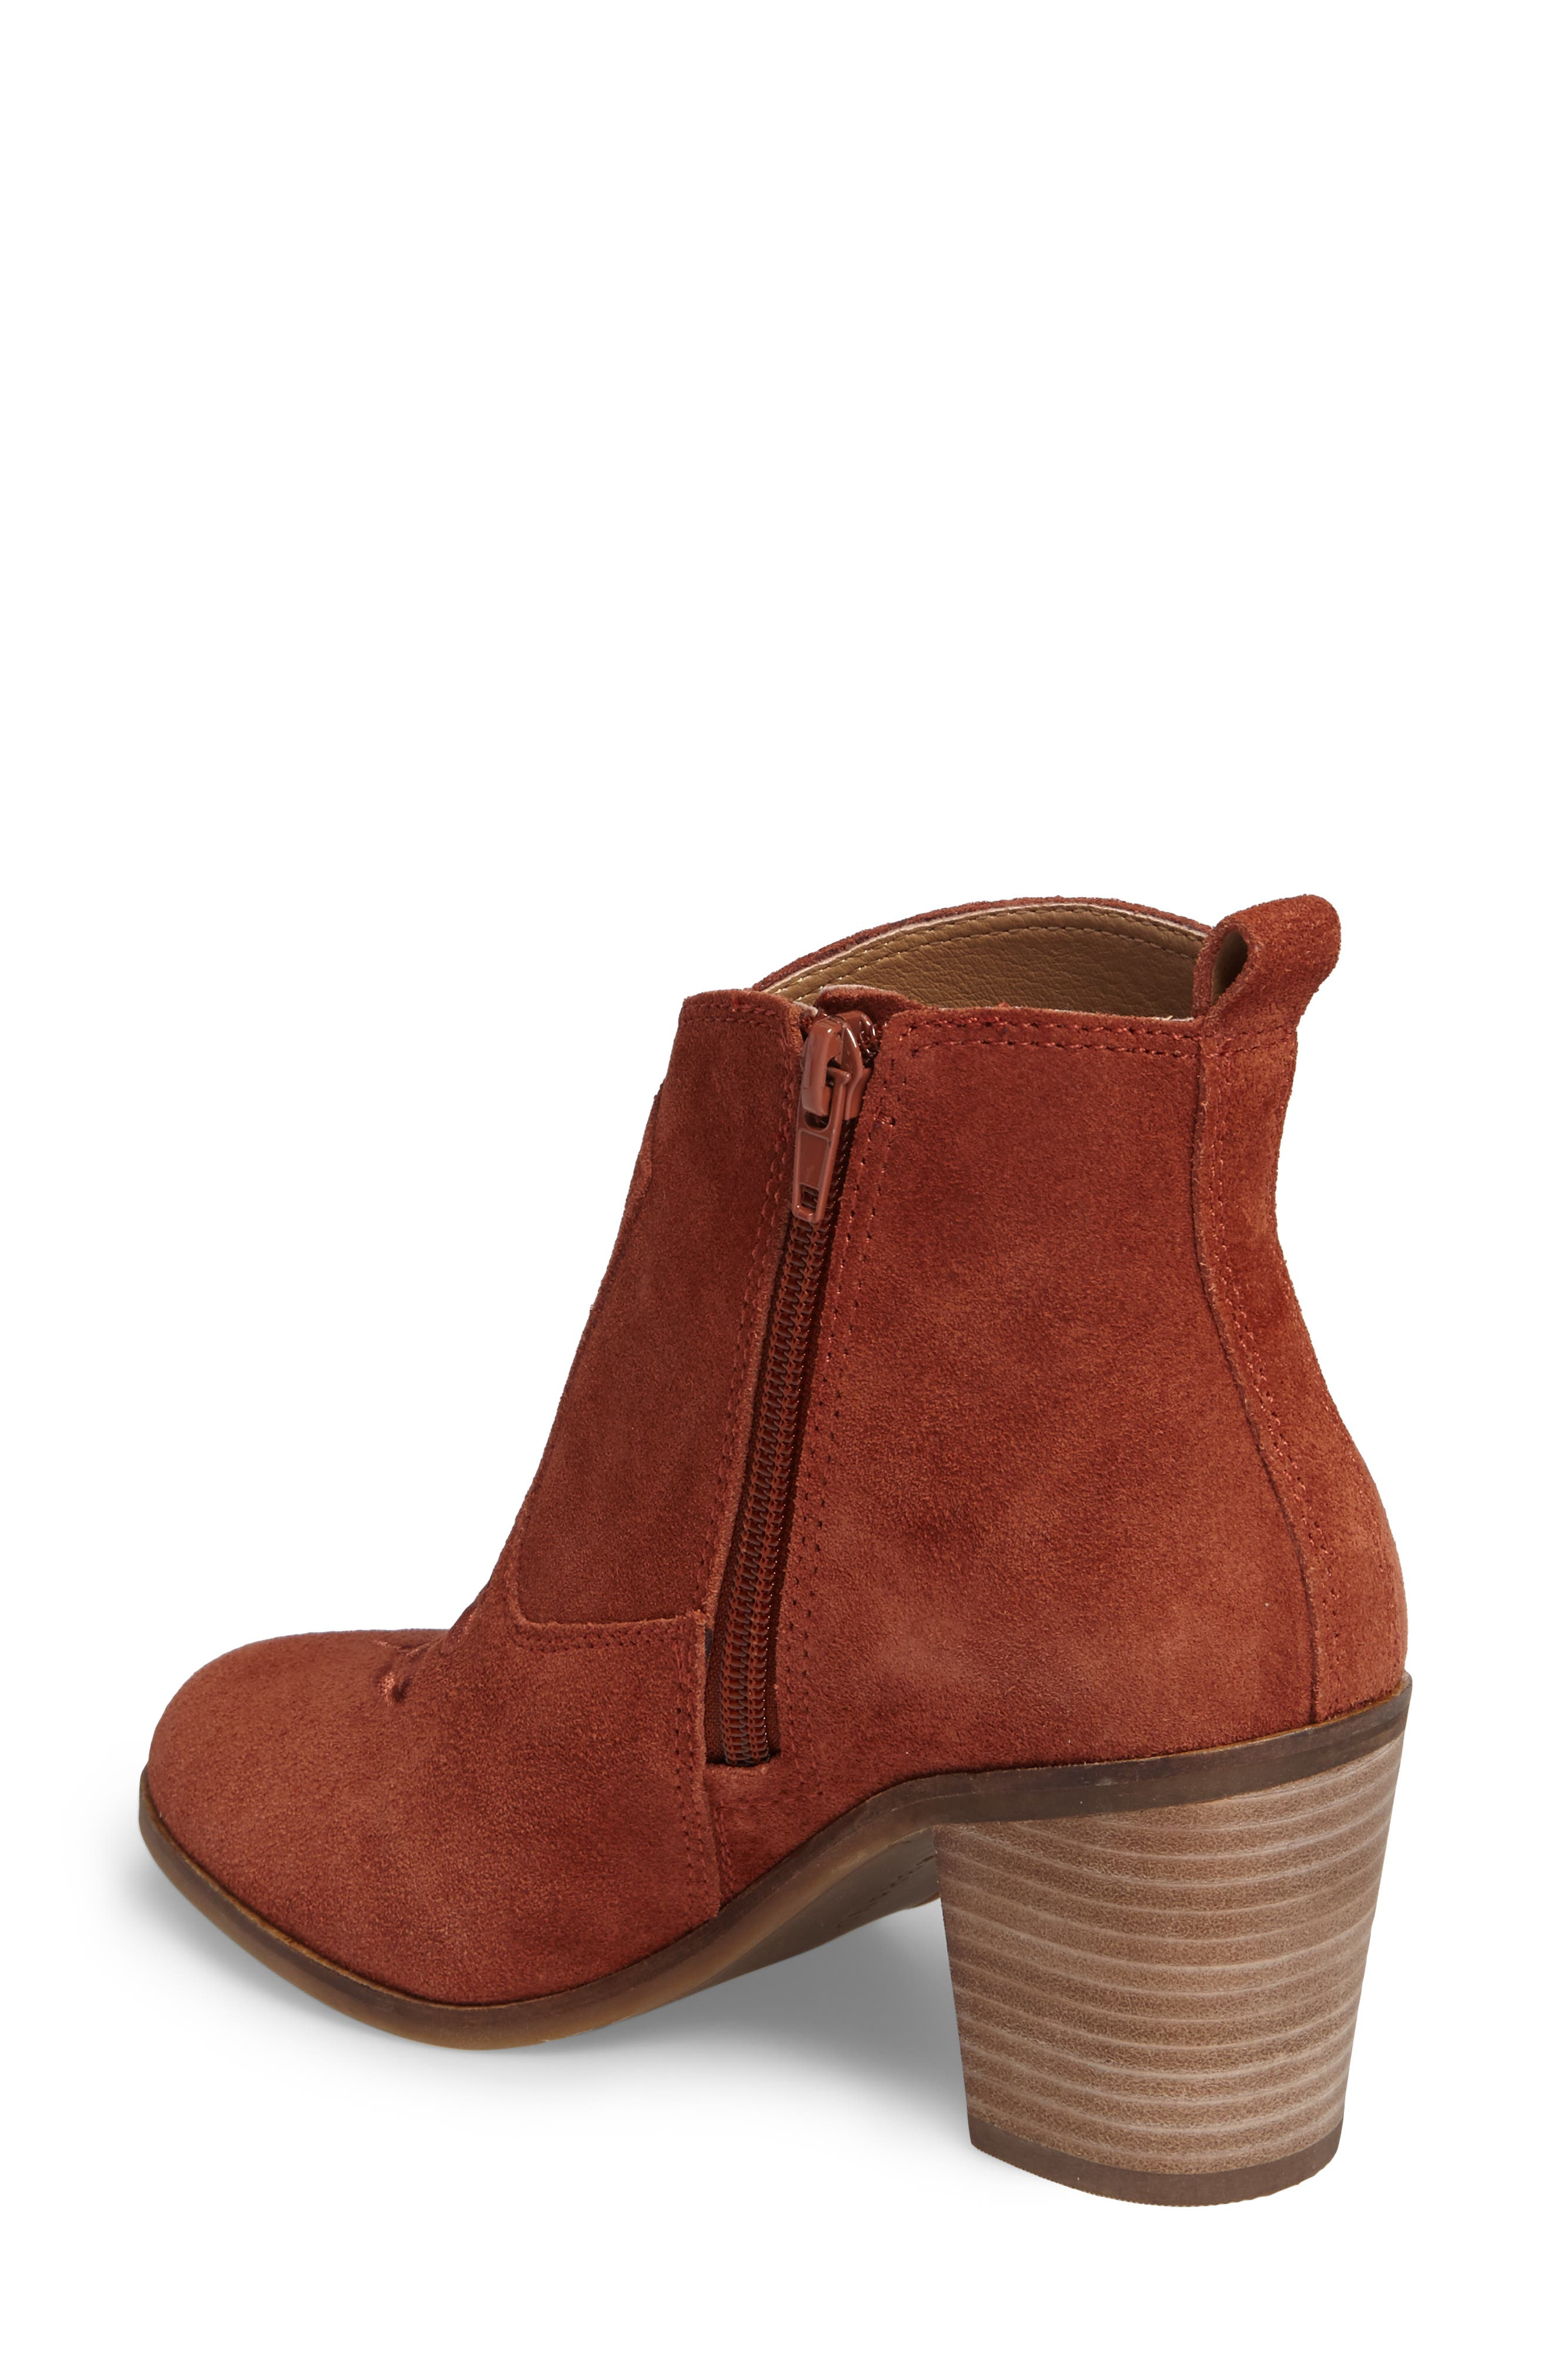 Pexton Embroidered Bootie,                             Alternate thumbnail 8, color,